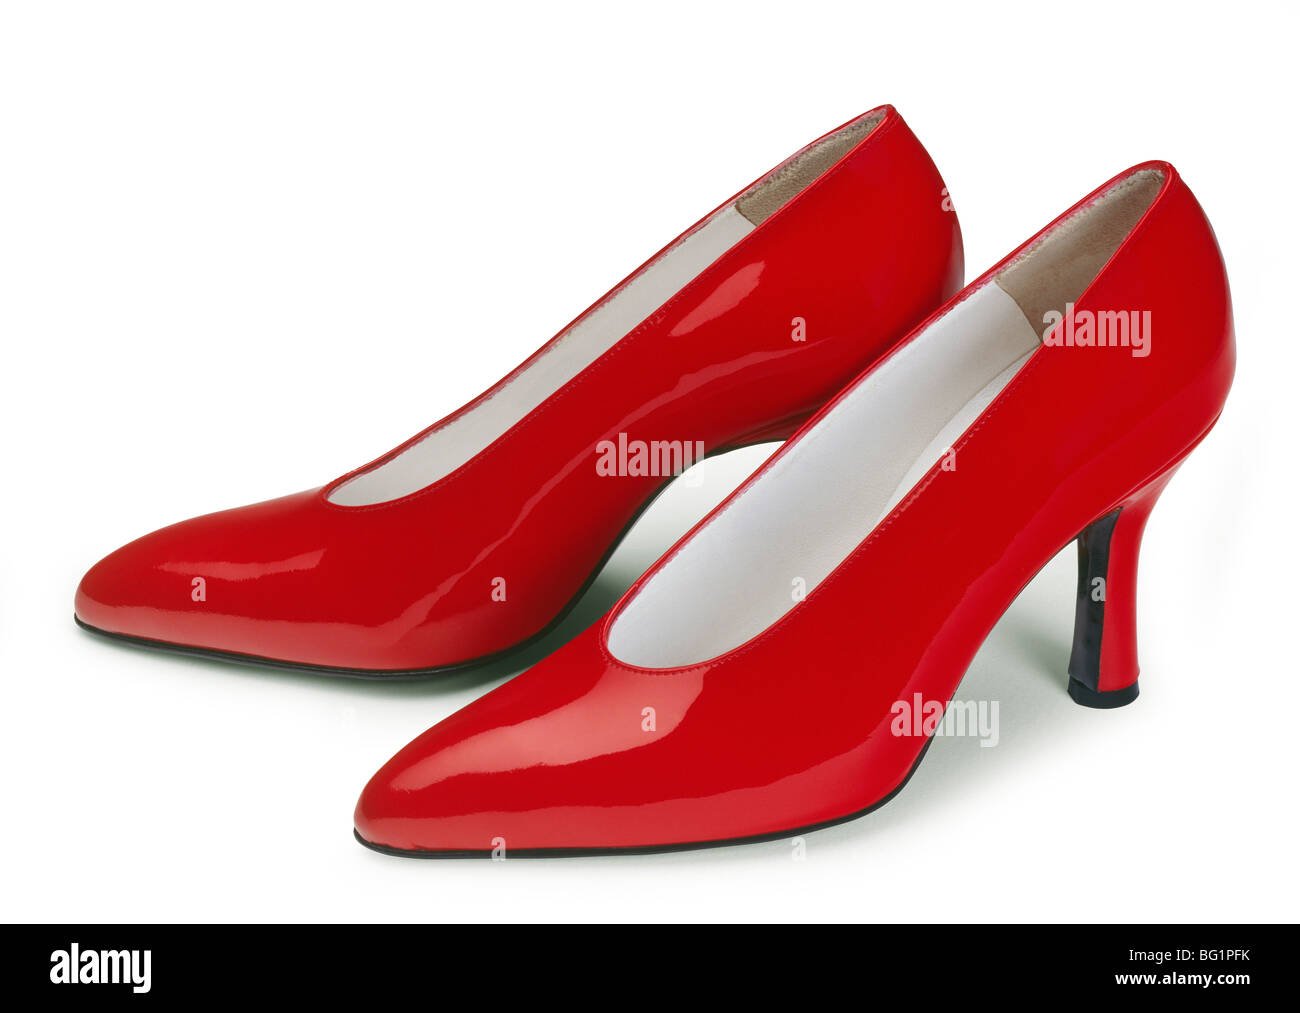 Red high heels isolated on white background. - Stock Image